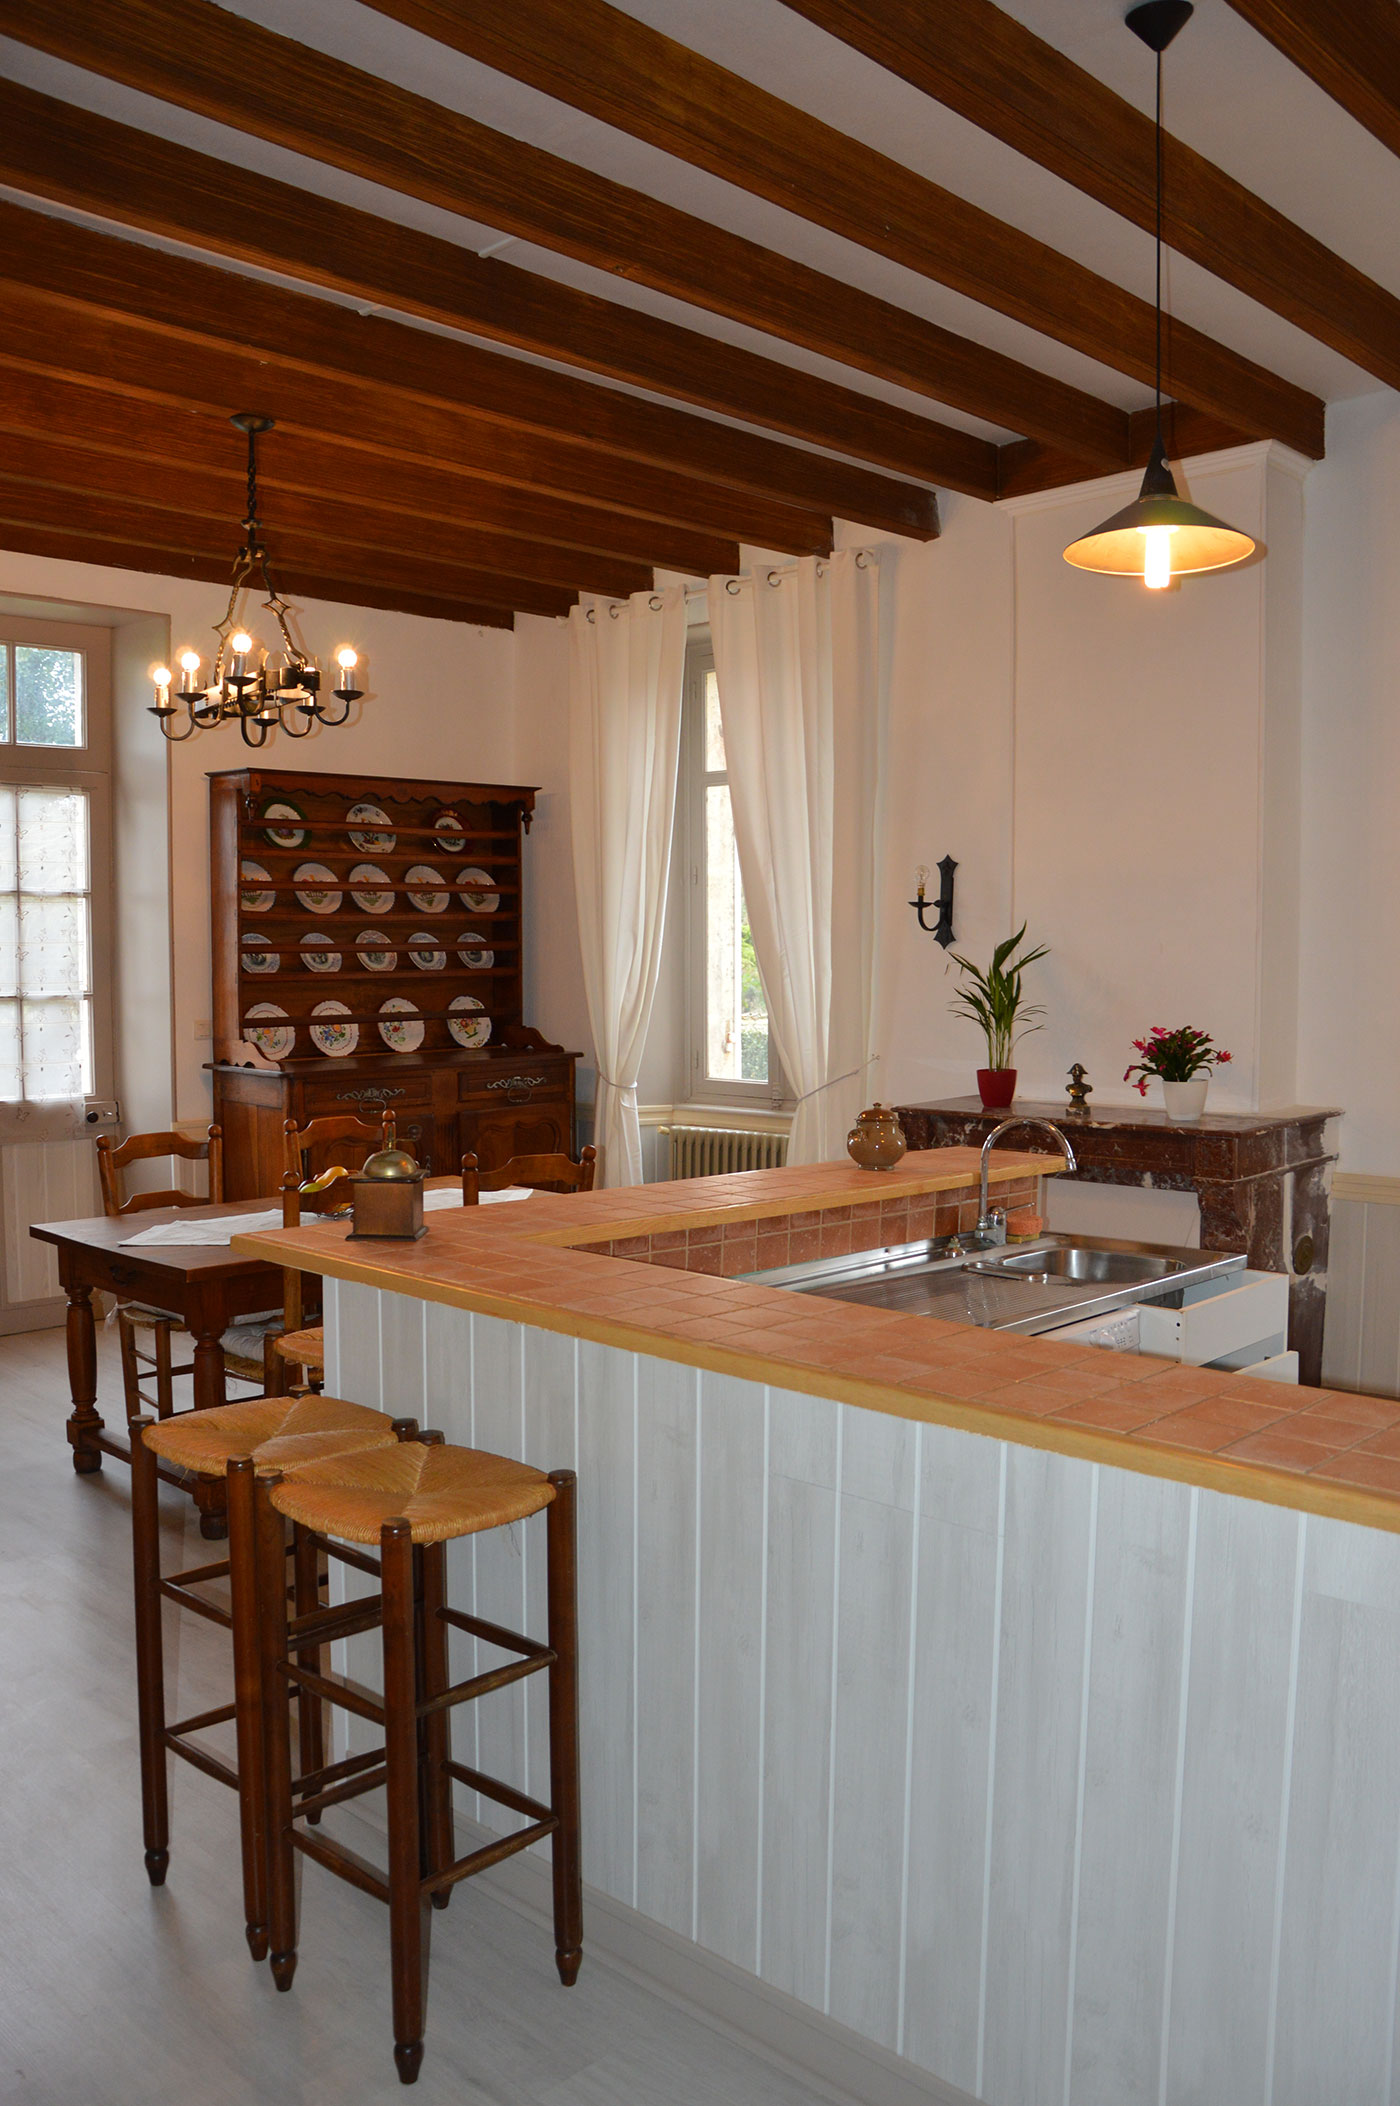 Kitchen of the guest house